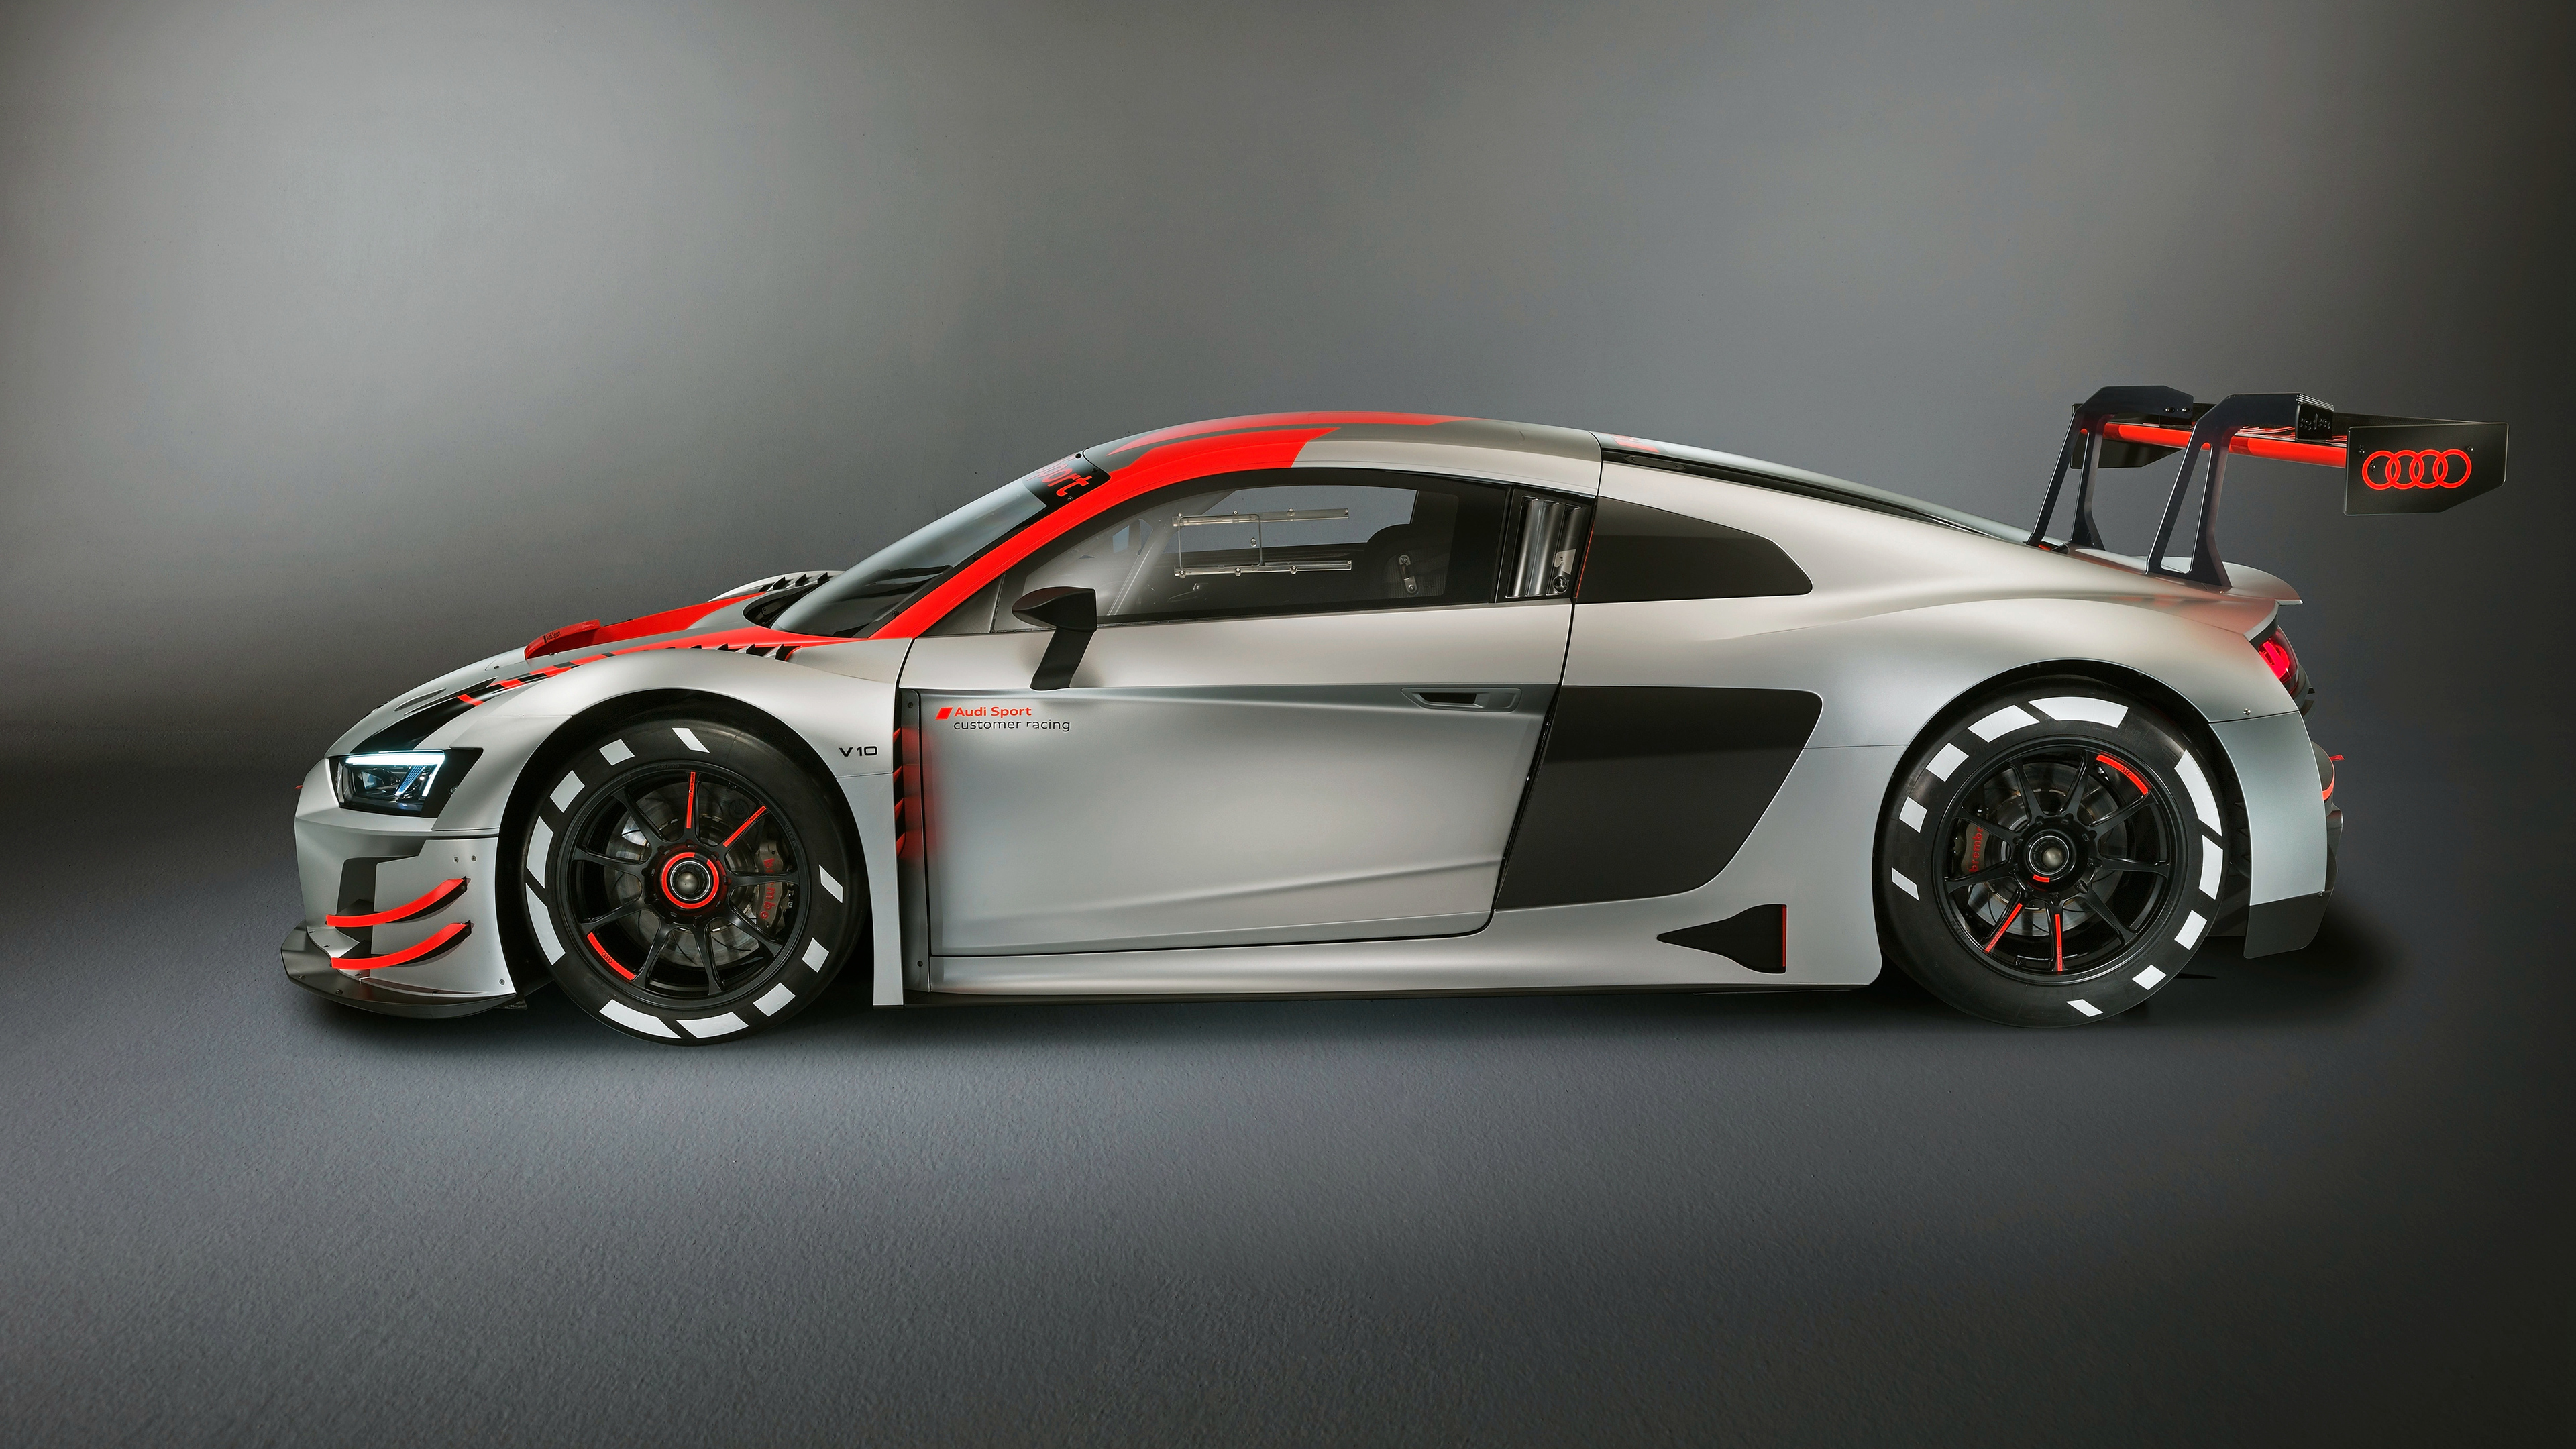 2019 audi r8 lms 4k 1539792900 - 2019 Audi R8 LMS 4k - hd-wallpapers, cars wallpapers, audi wallpapers, audi r8 wallpapers, audi r8 lms wallpapers, 4k-wallpapers, 2019 cars wallpapers